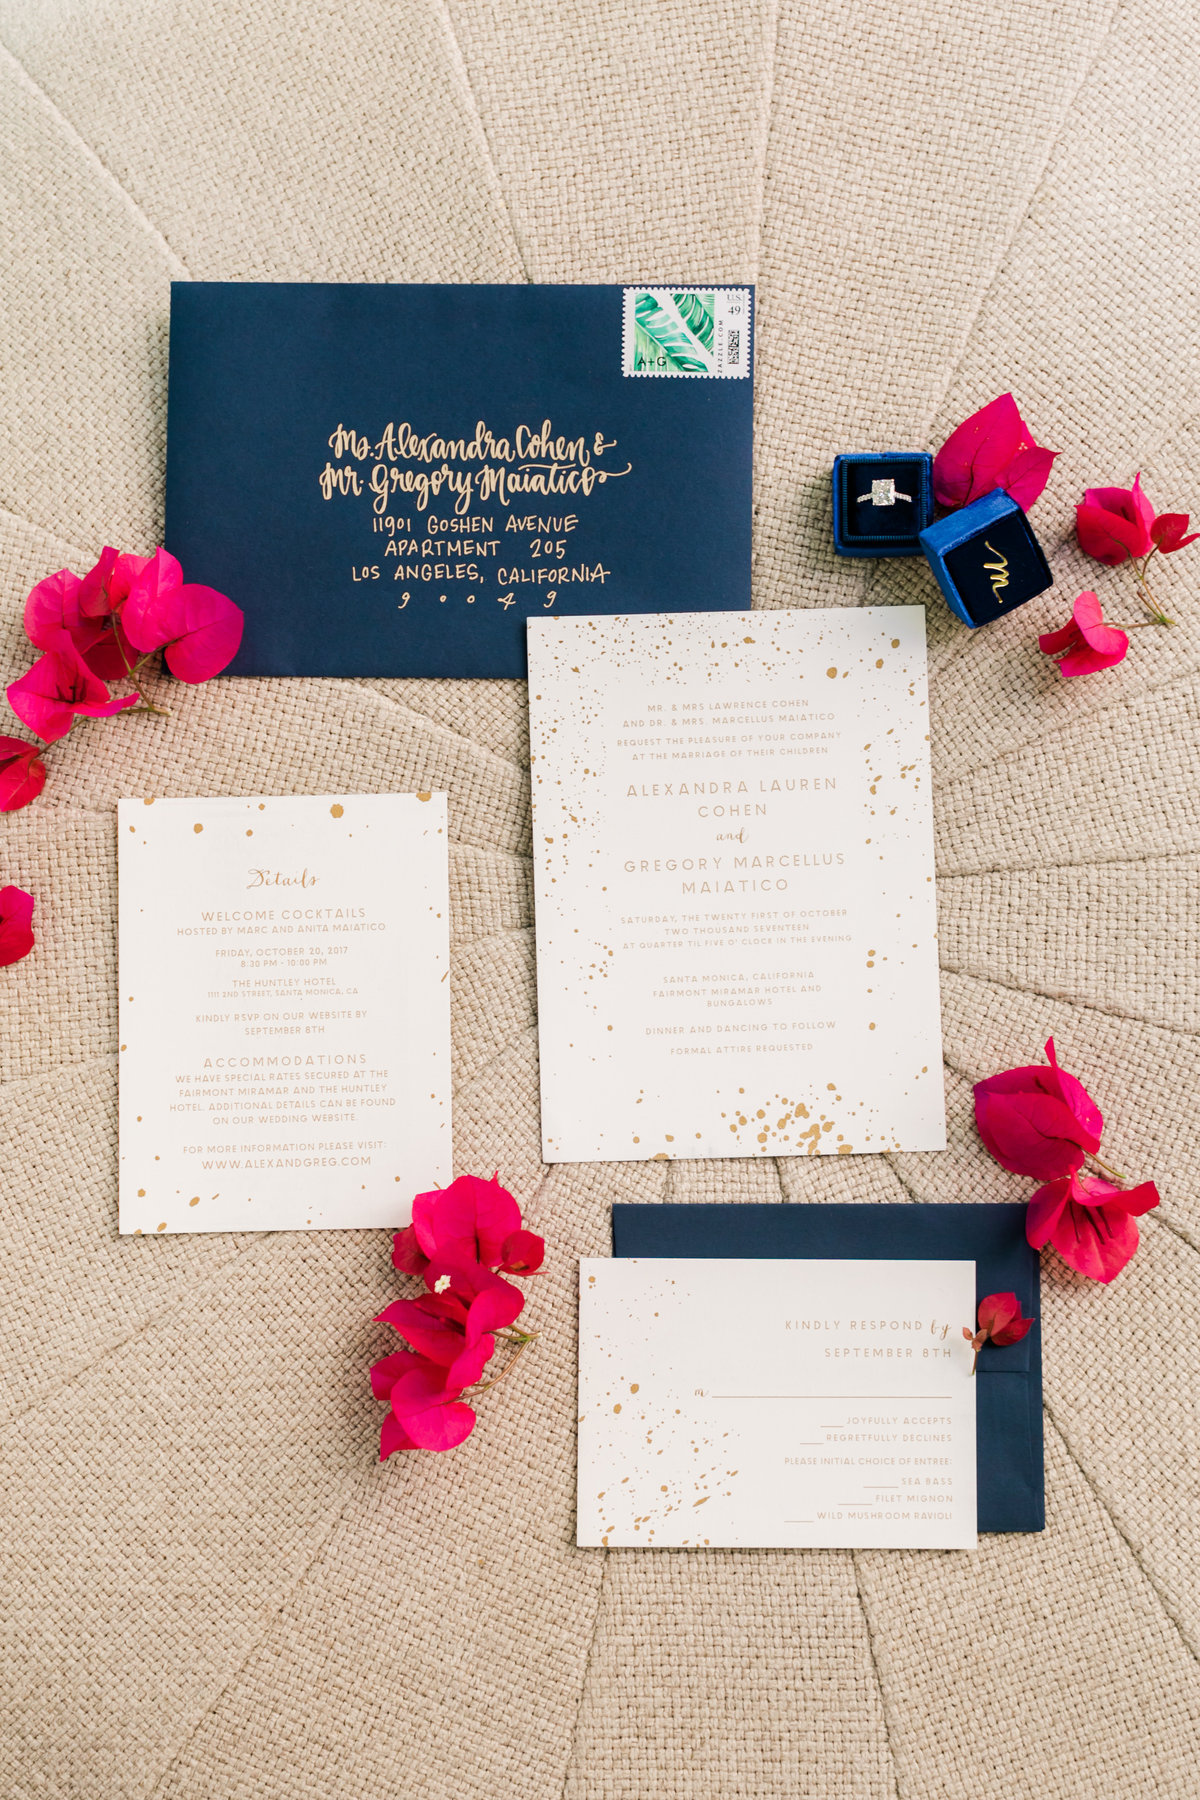 Tropical_Modern_Fairmont_Santa_Monica_Navy_Pink_Wedding_Valorie_Darling_Photography - 2 of 146